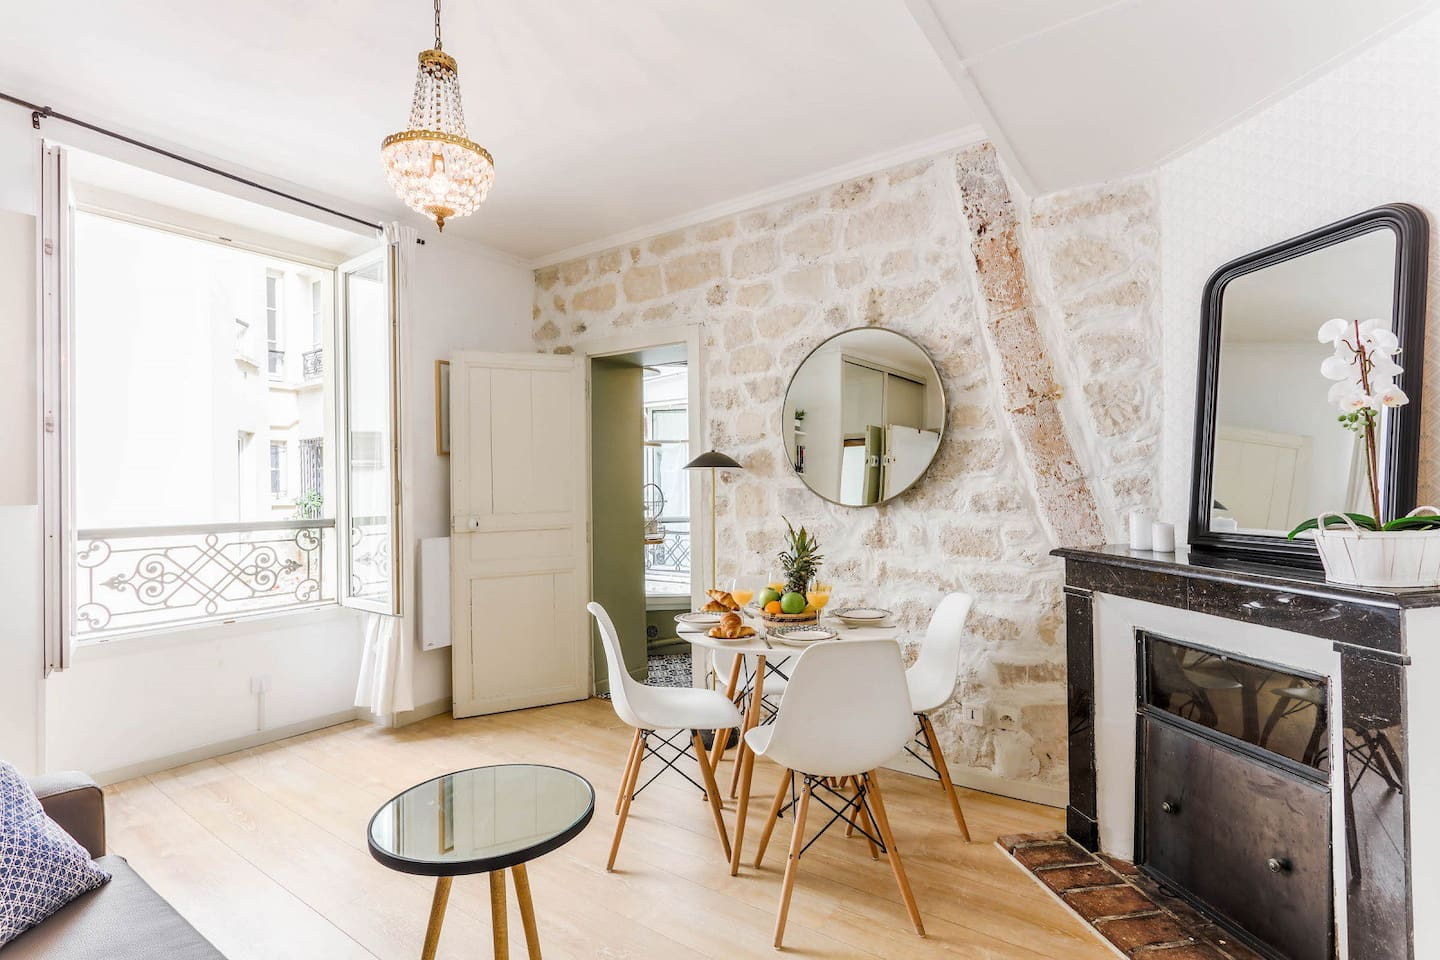 The exposed brick walls and decorative fireplace give elegance and style to the apartment.